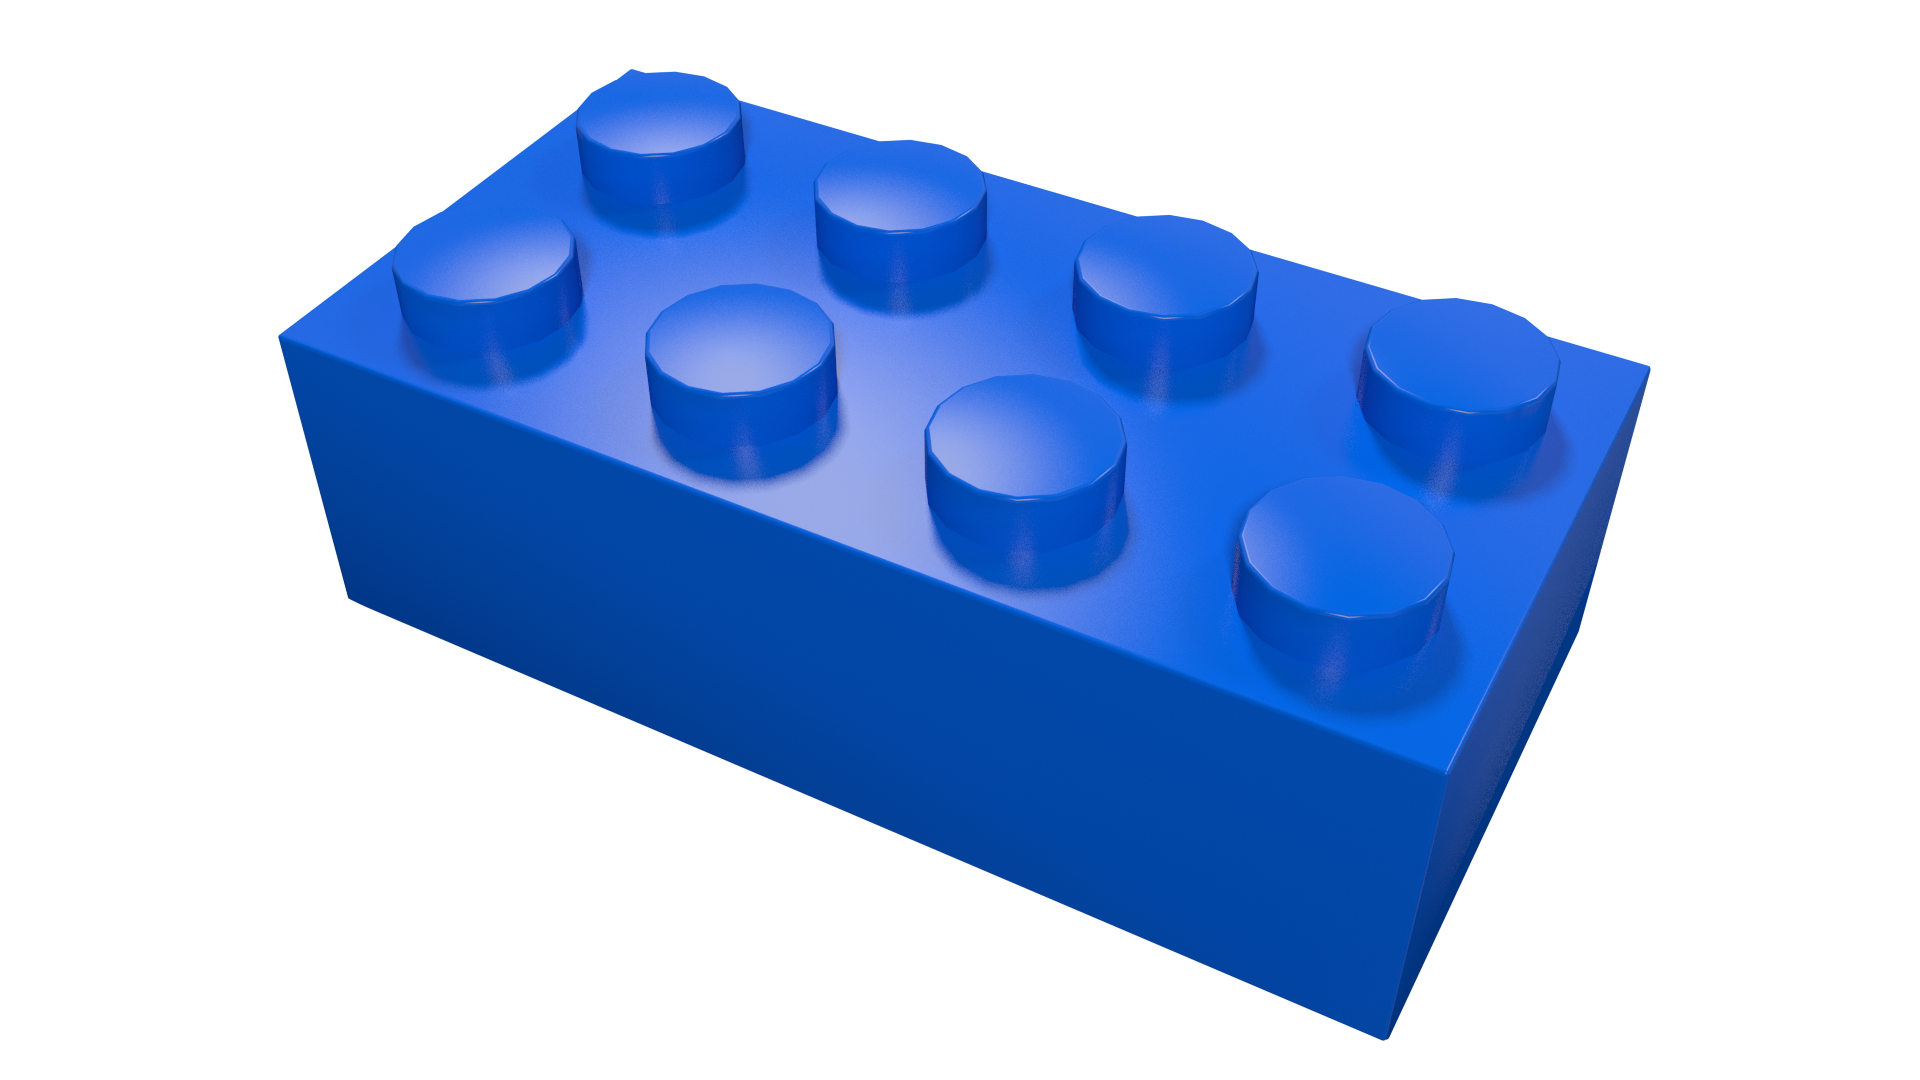 Blue lego clipart.